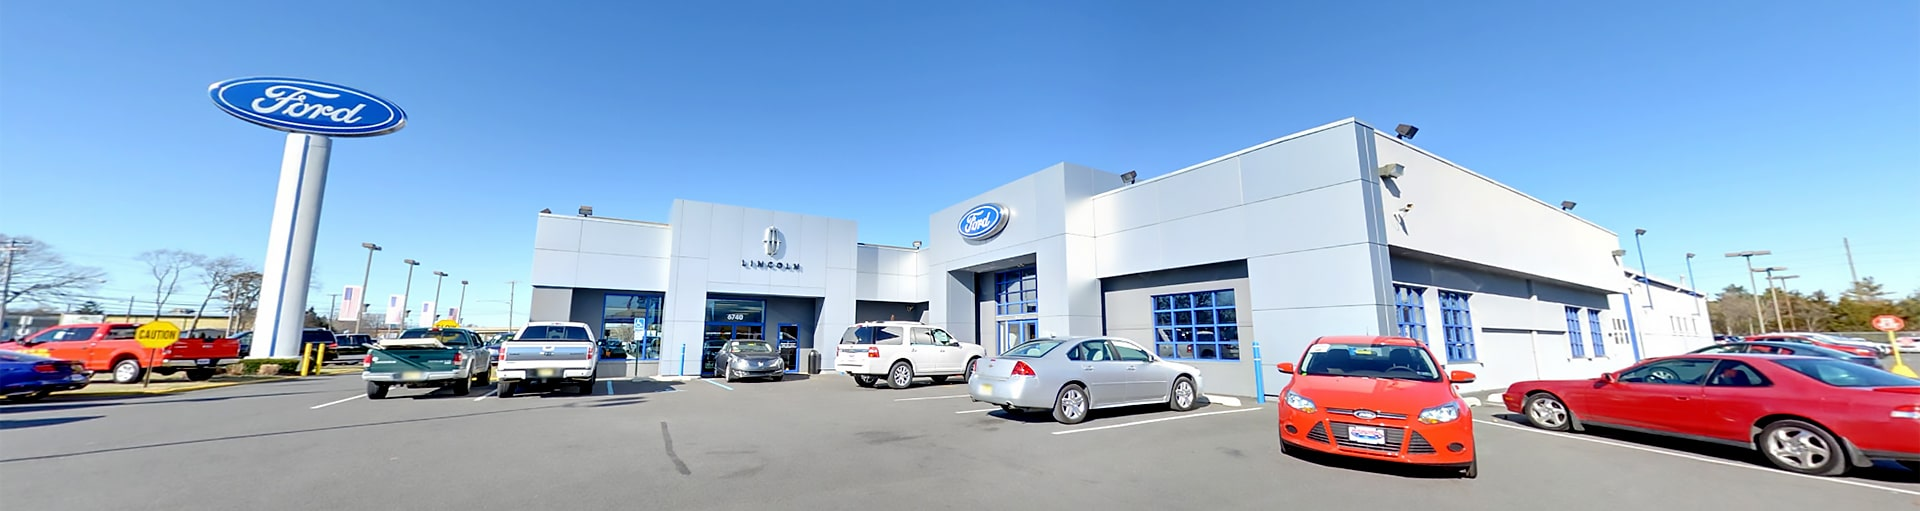 Chapman Ford Accessories Department